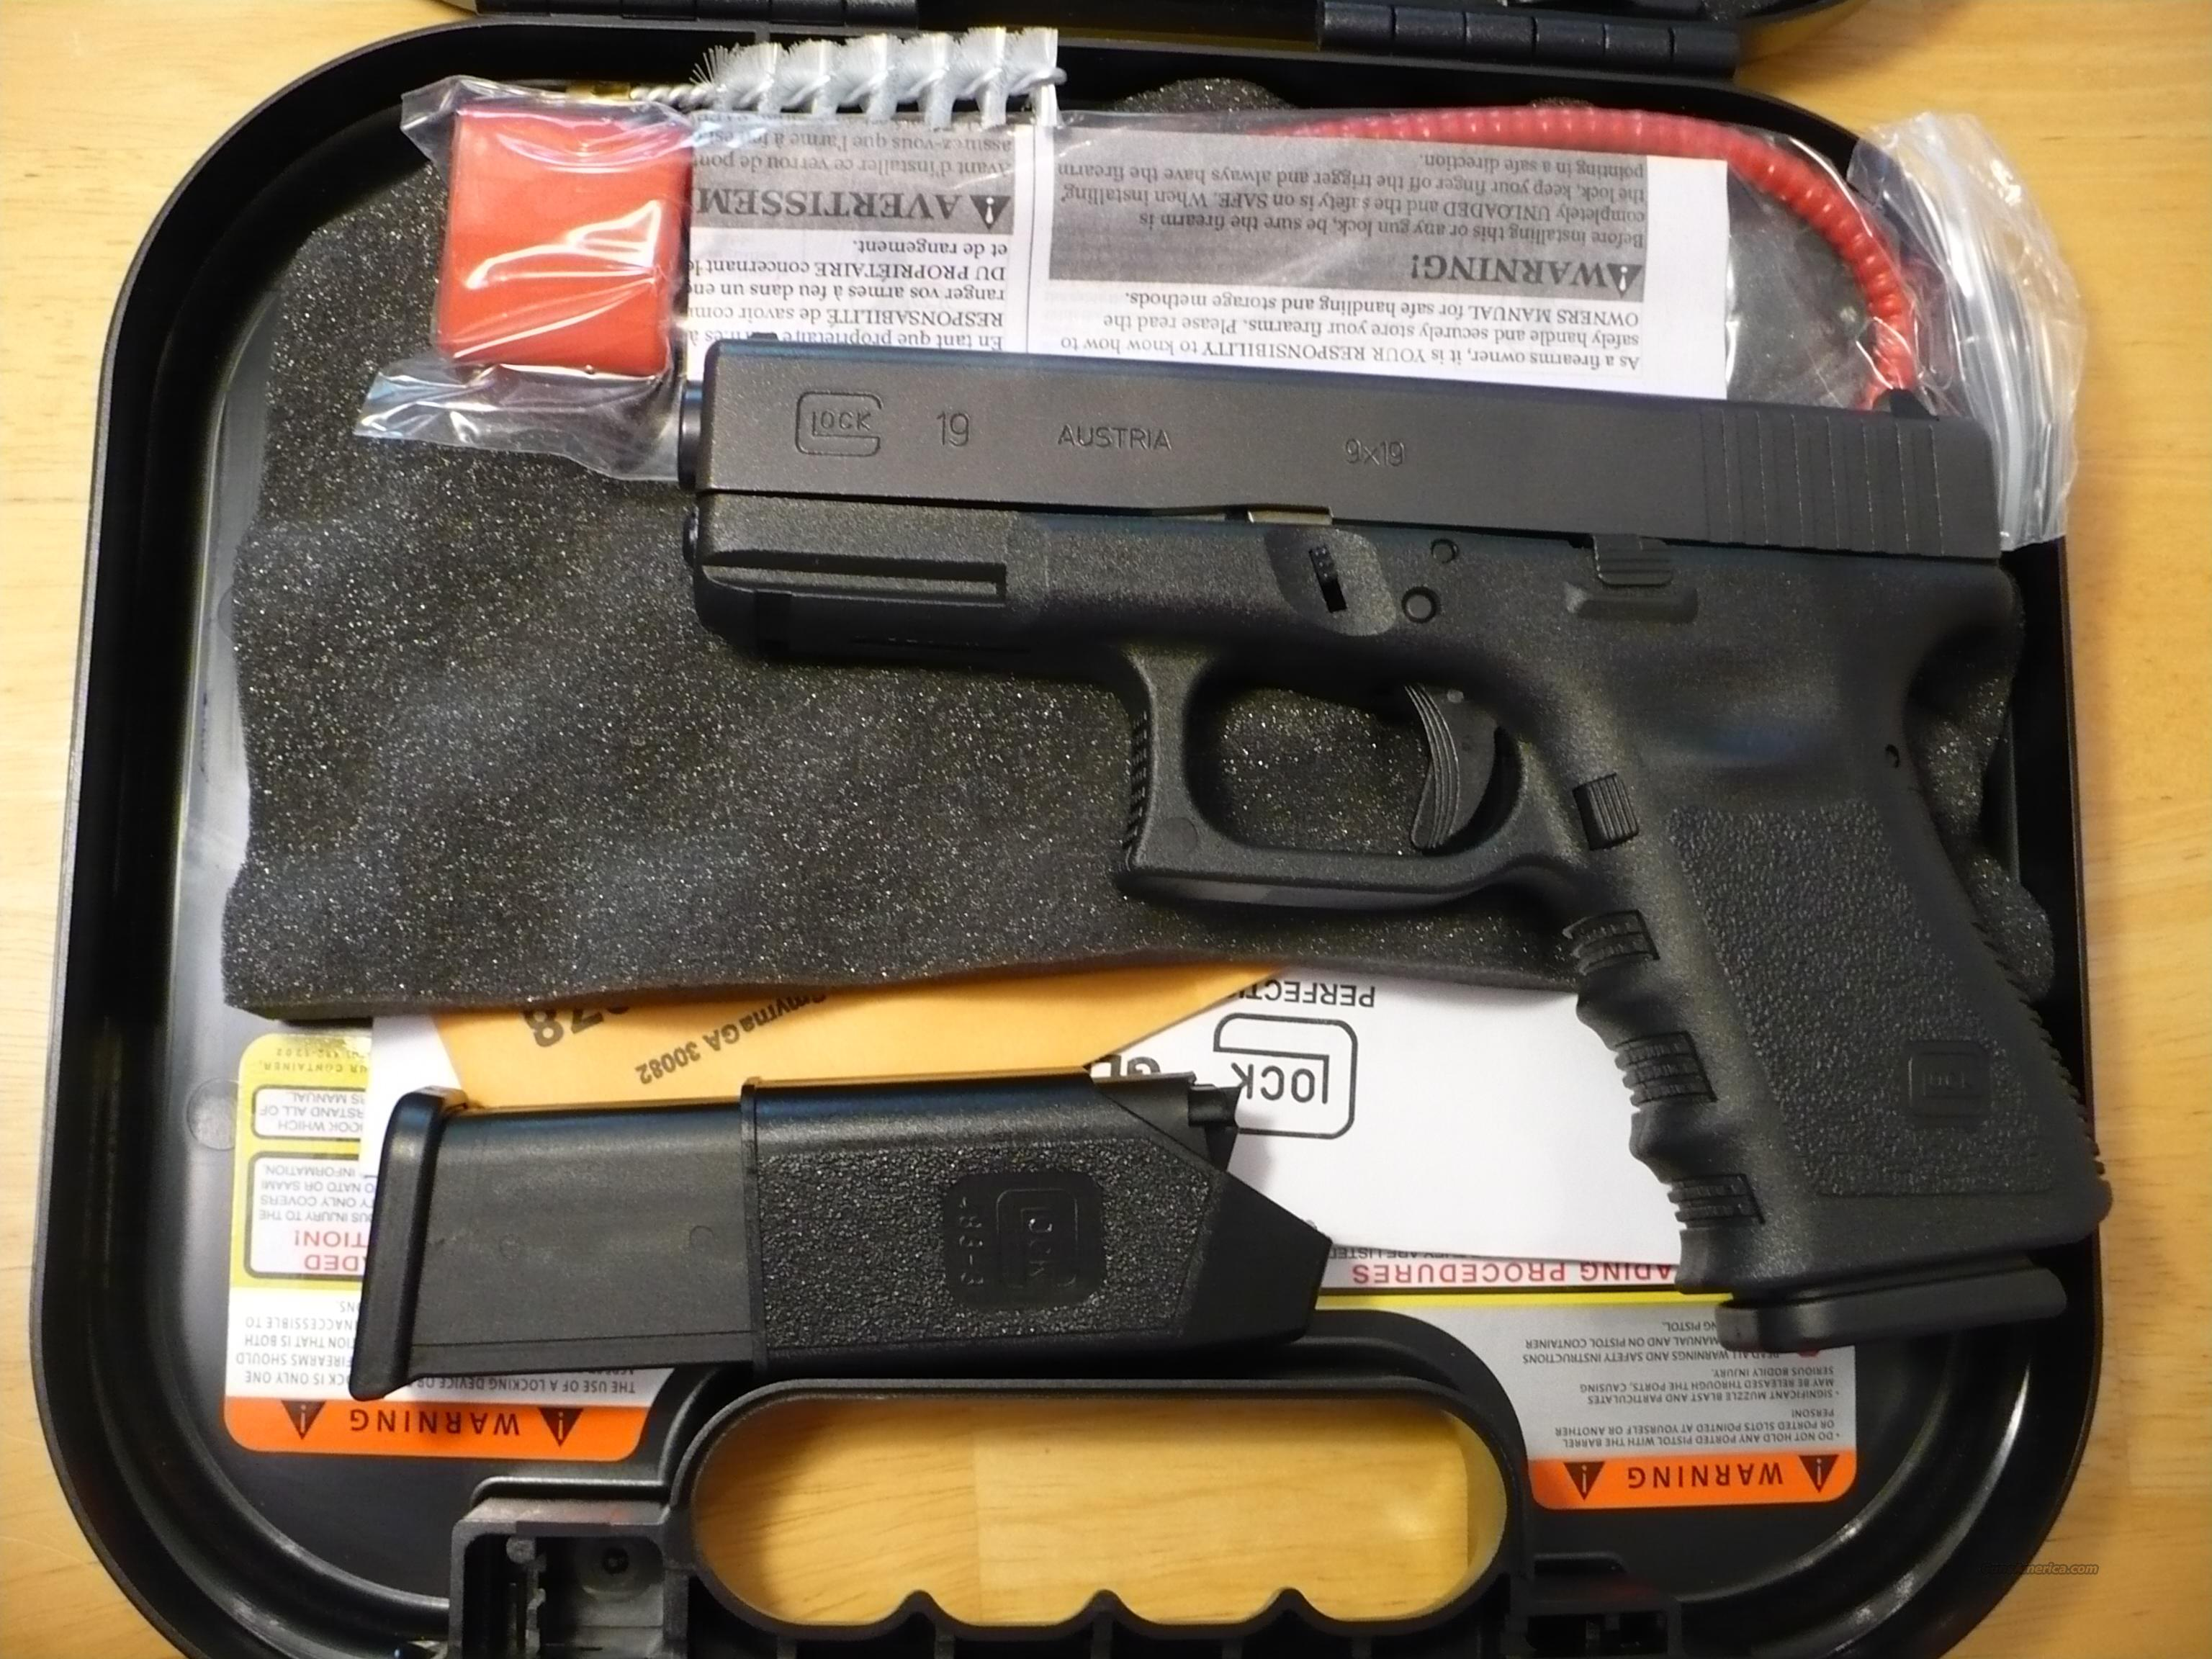 GLOCKS NEW IN STOCK,22,23,19 $500  Guns > Pistols > Glock Pistols > 29/30/36